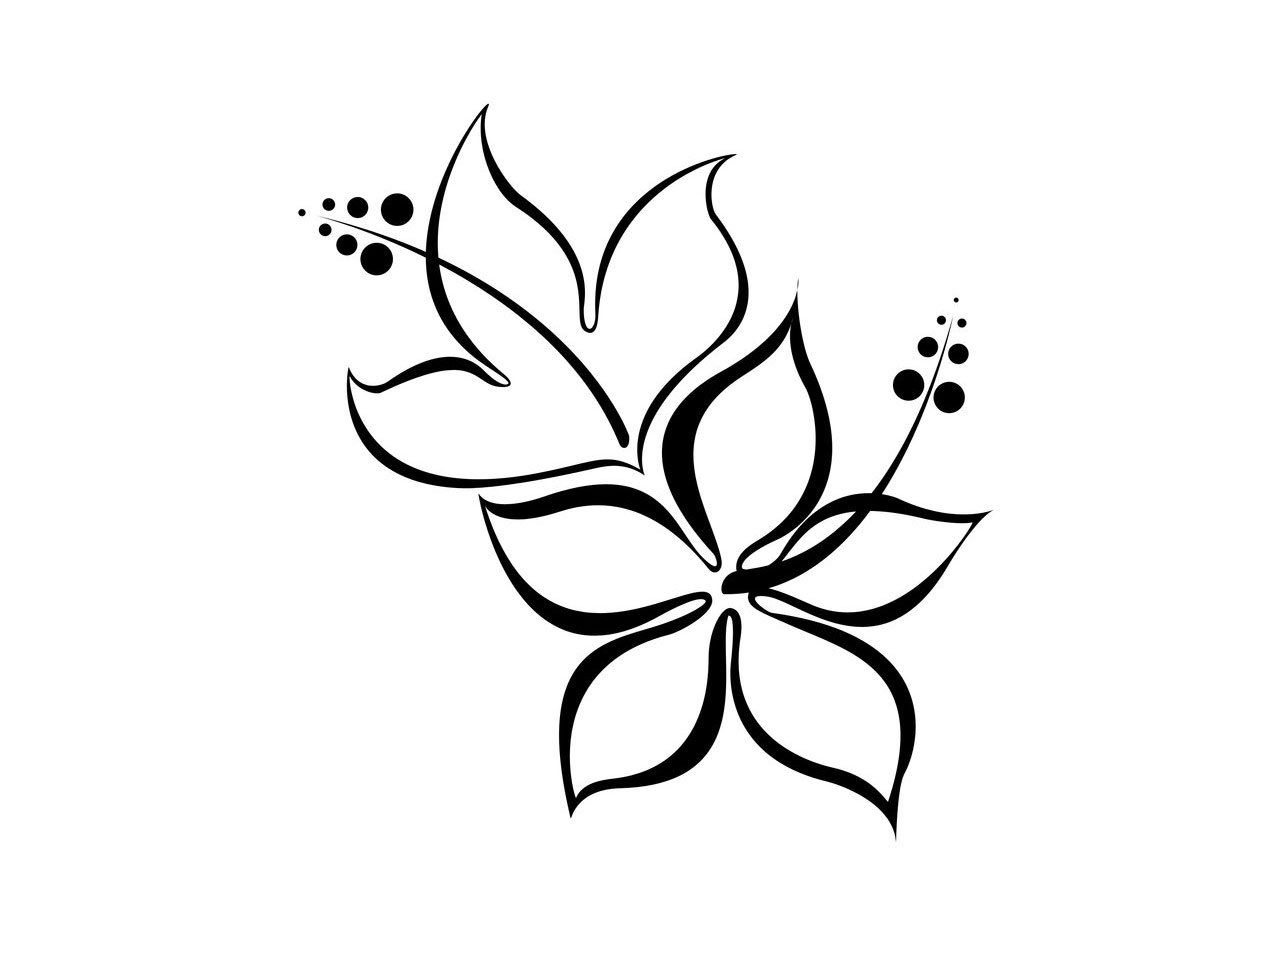 Simple clipart floral design #10